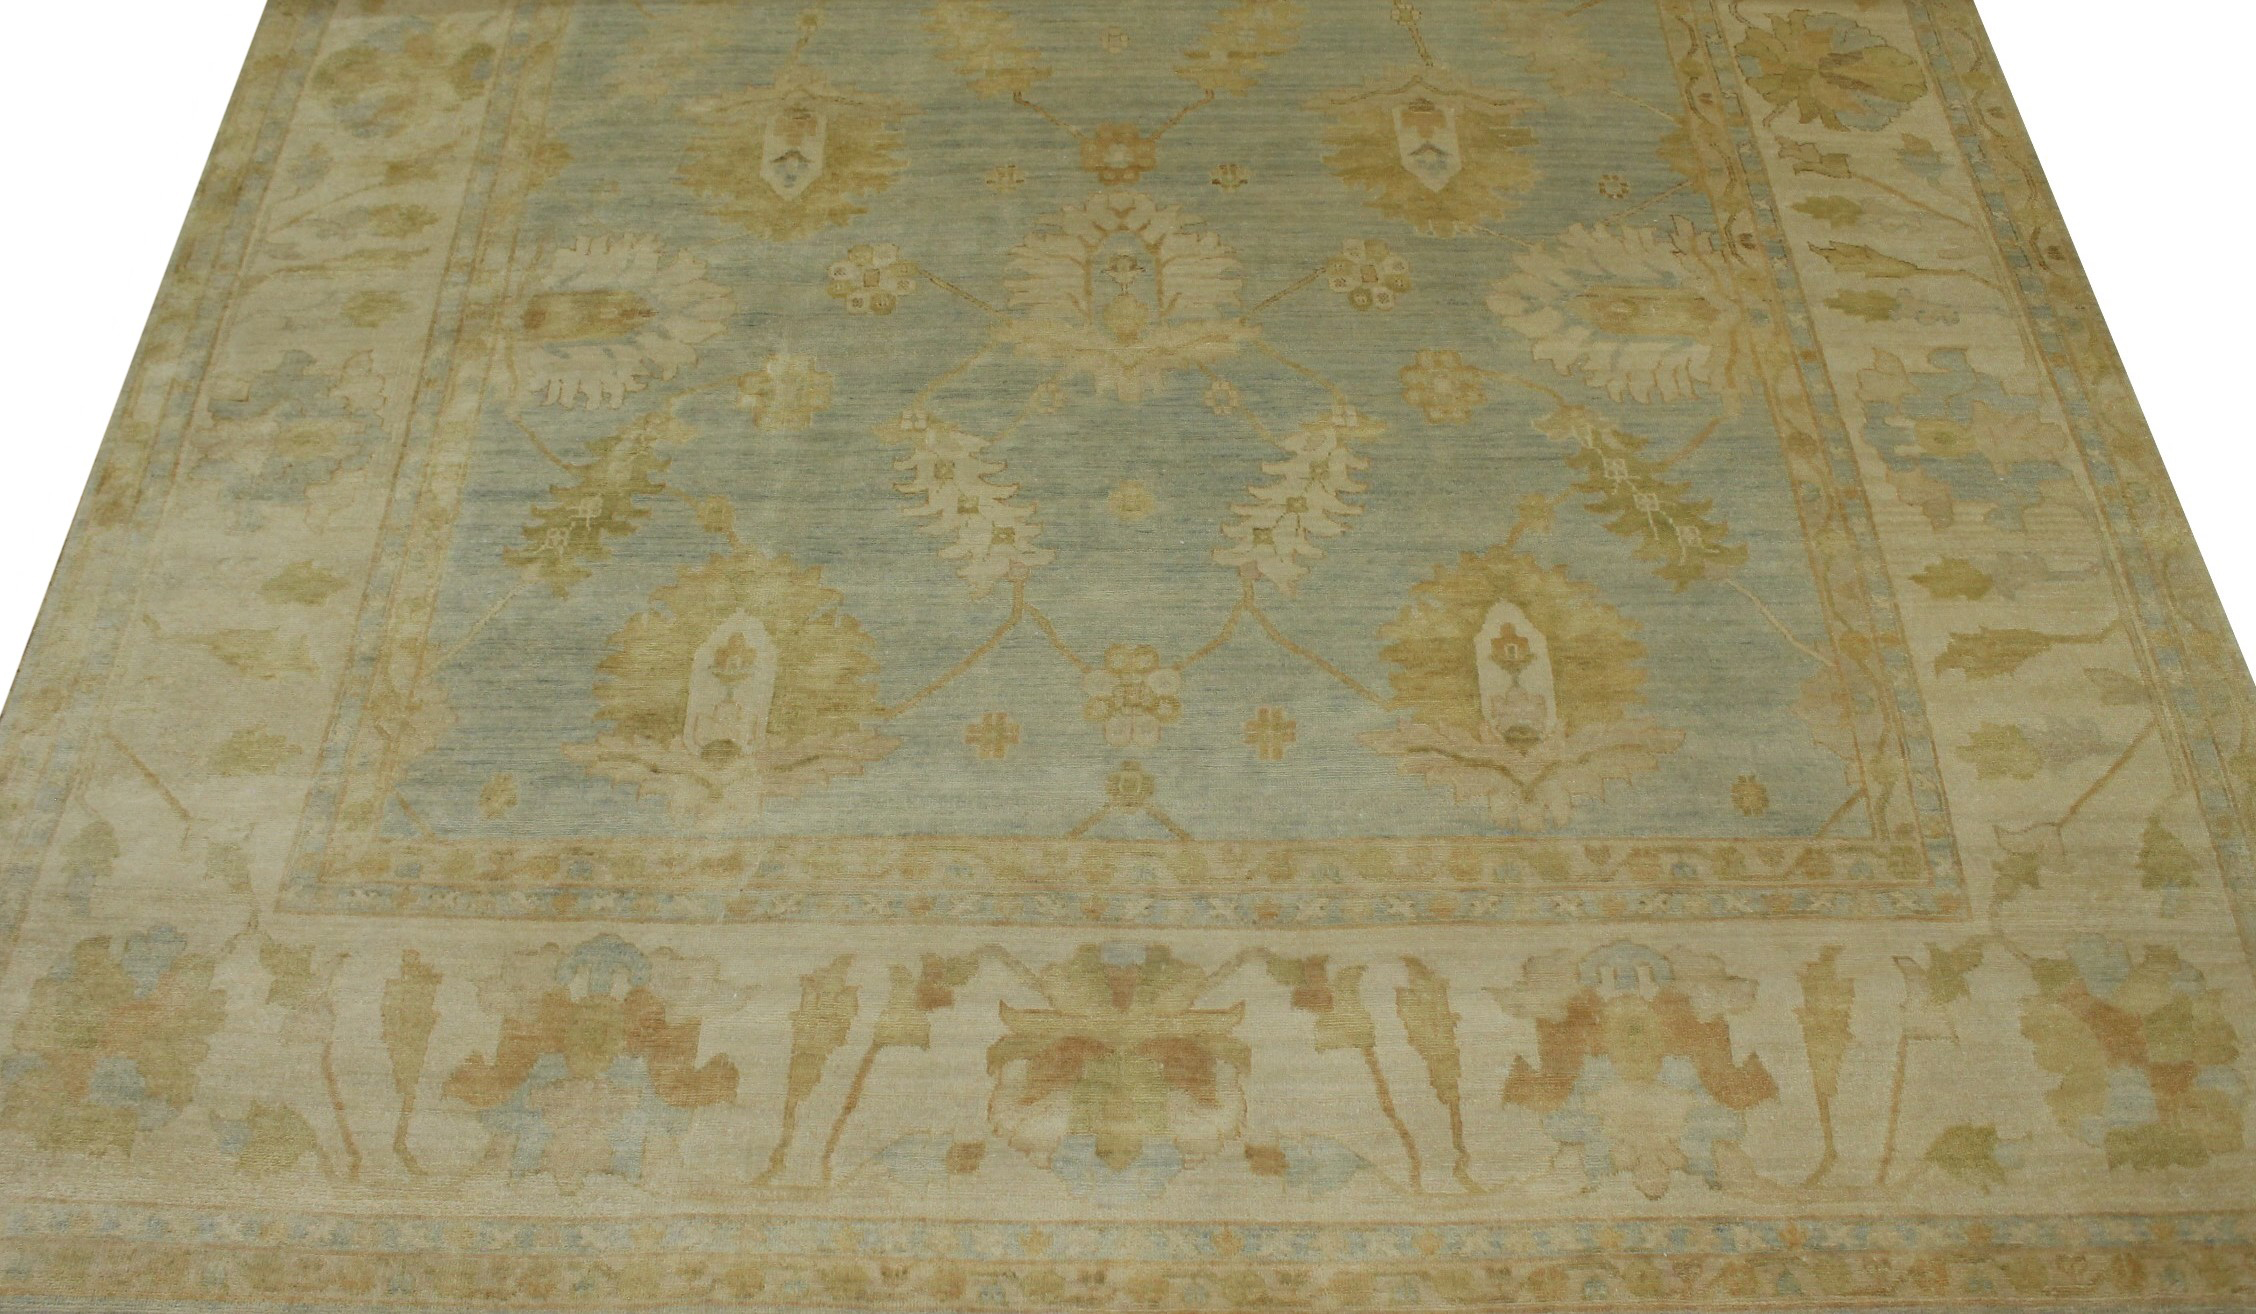 10x14 Oushak Hand Knotted Wool Area Rug - MR13768